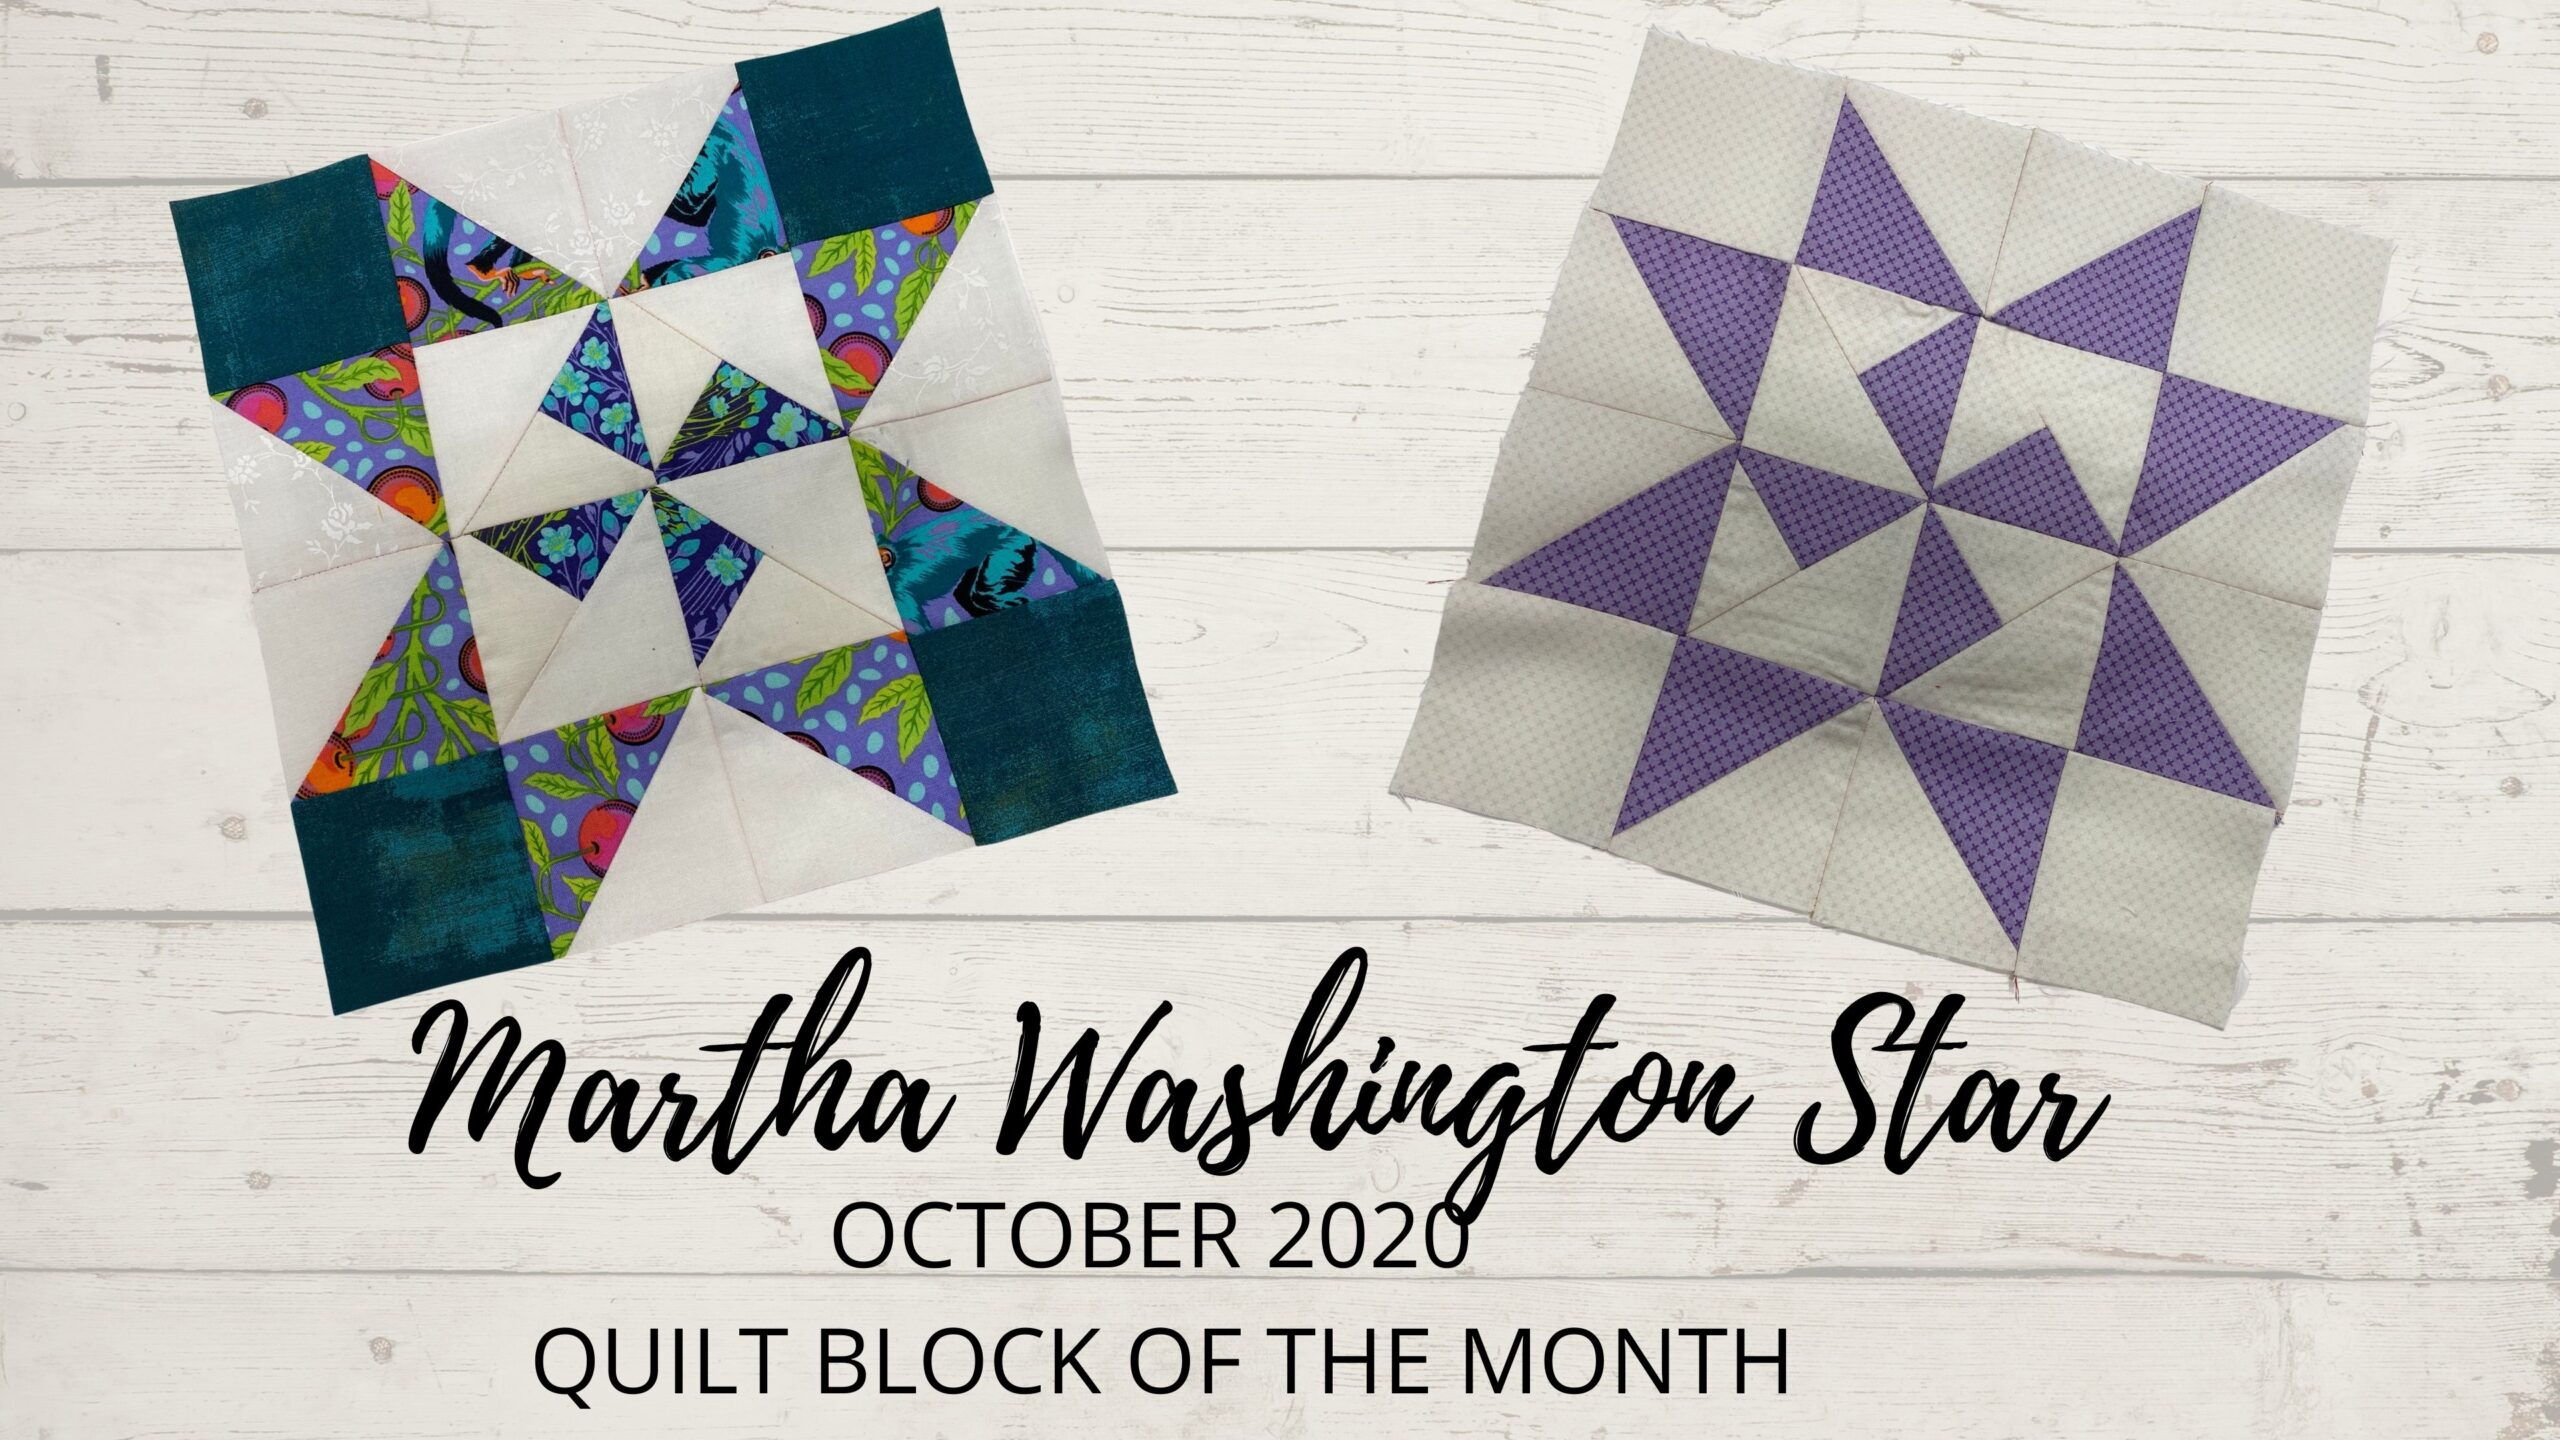 MARTHA WASHINGTON STAR